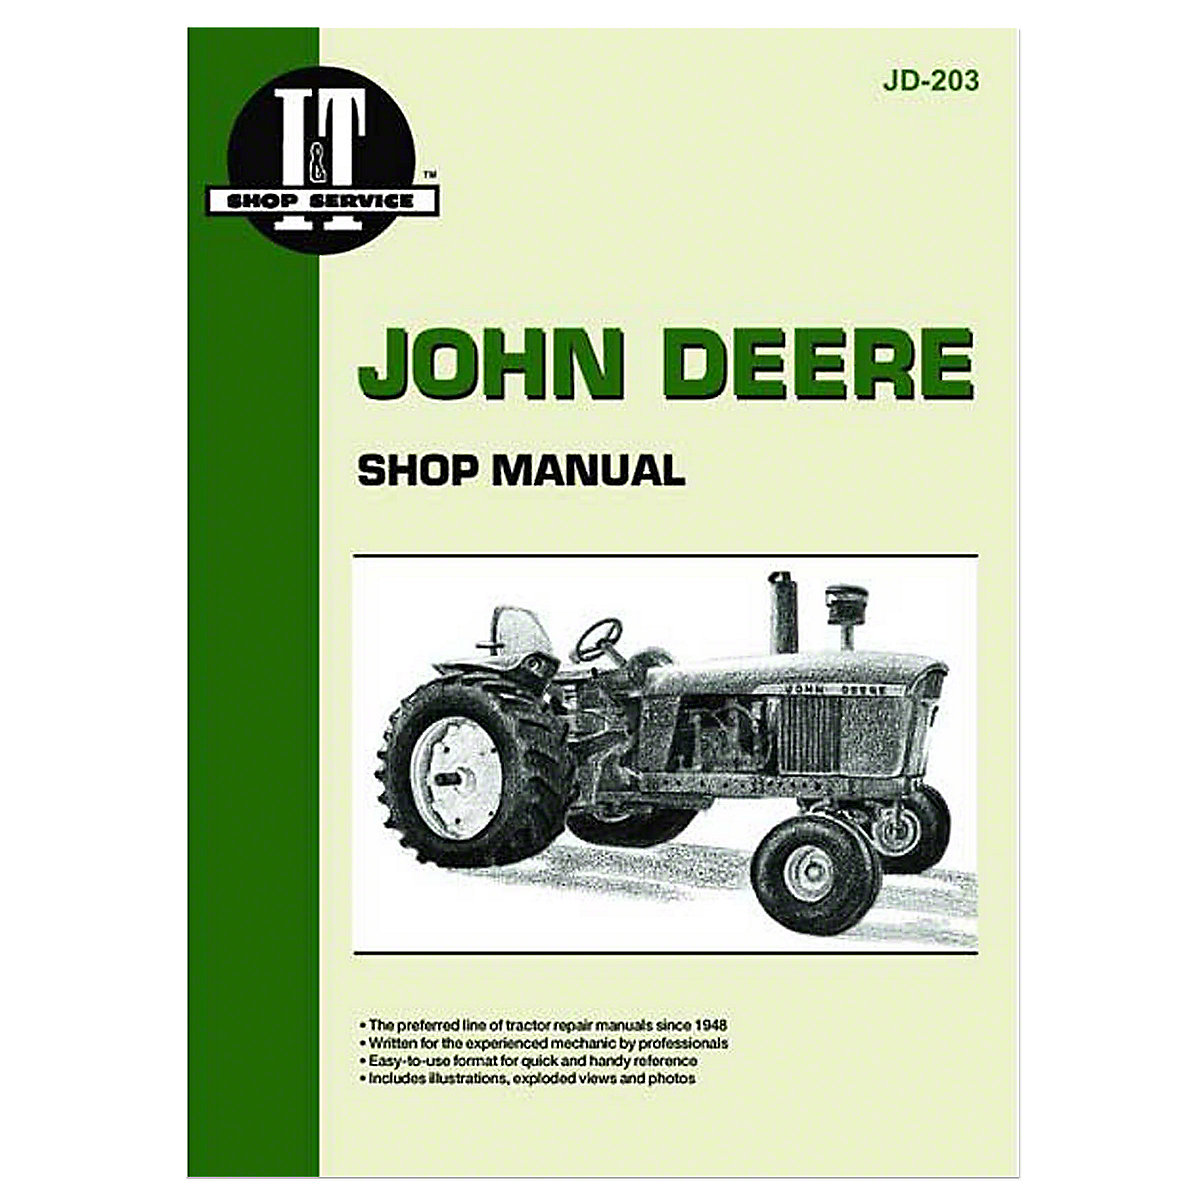 jd203 john deere i u0026t shop manual col